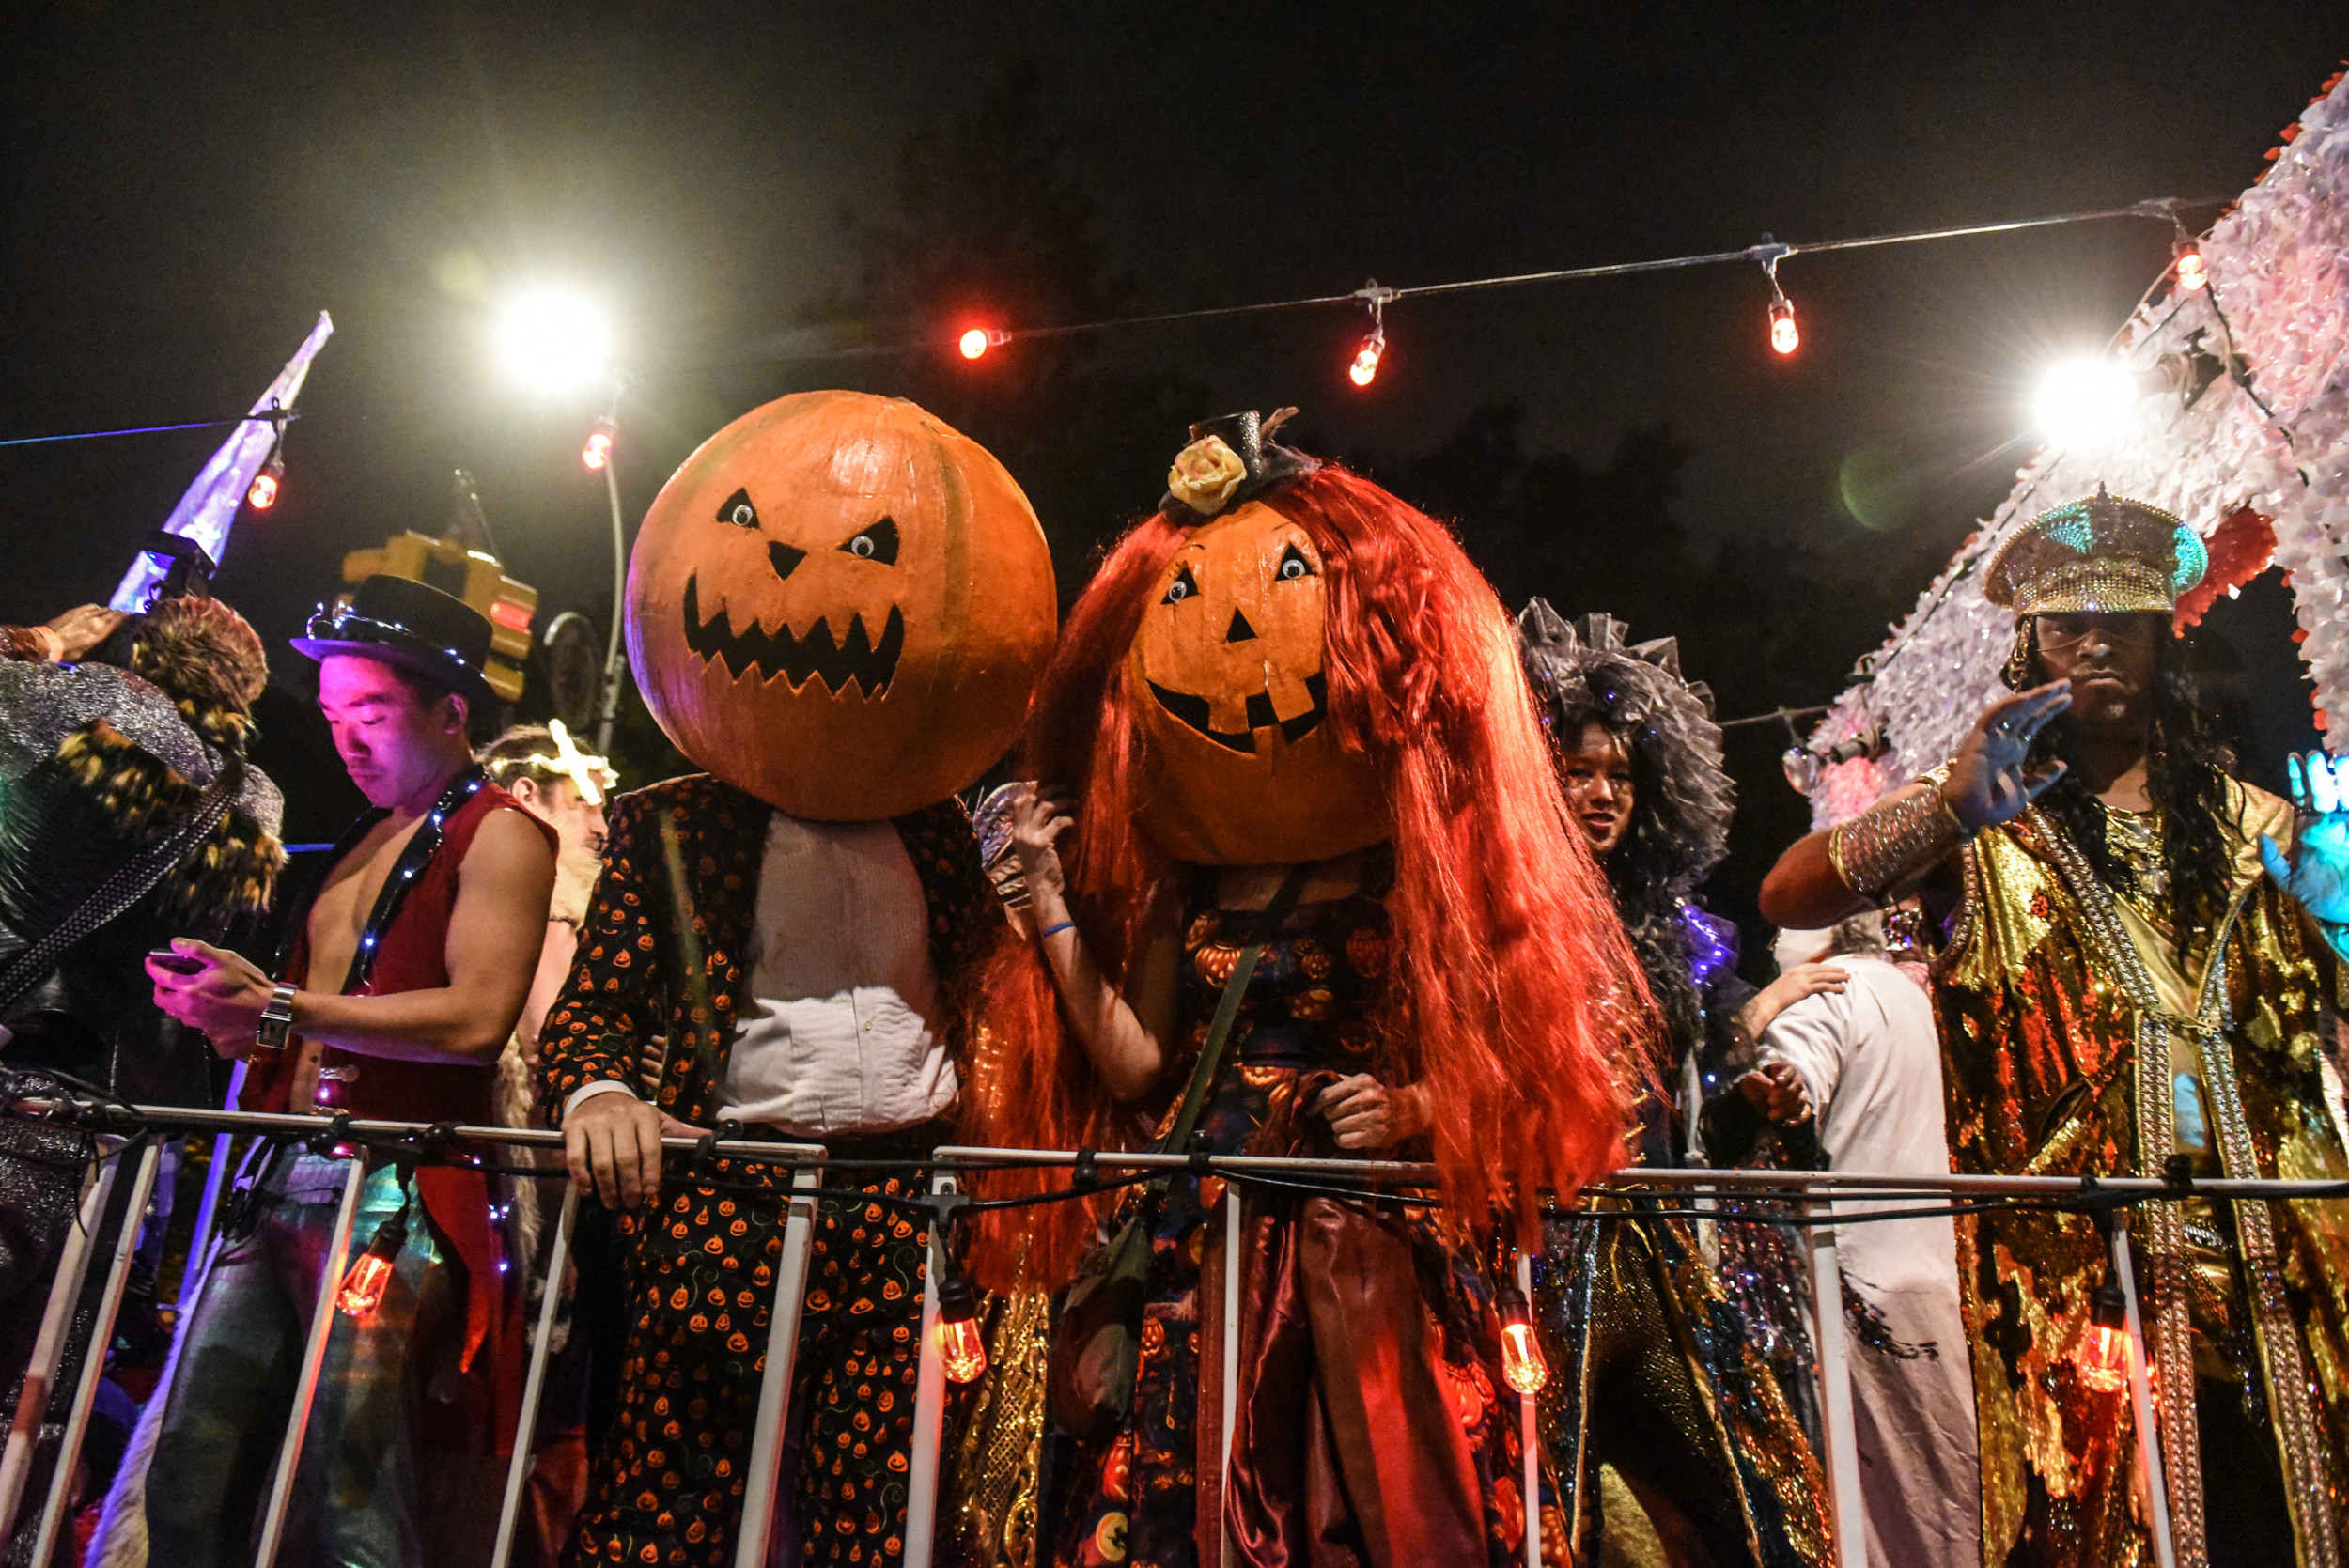 Sep 17, 2021· nyc insider guide 2021 october events calendar. New York Halloween Parade 2019: Route, Road Closures, How to Live-Stream Village Procession